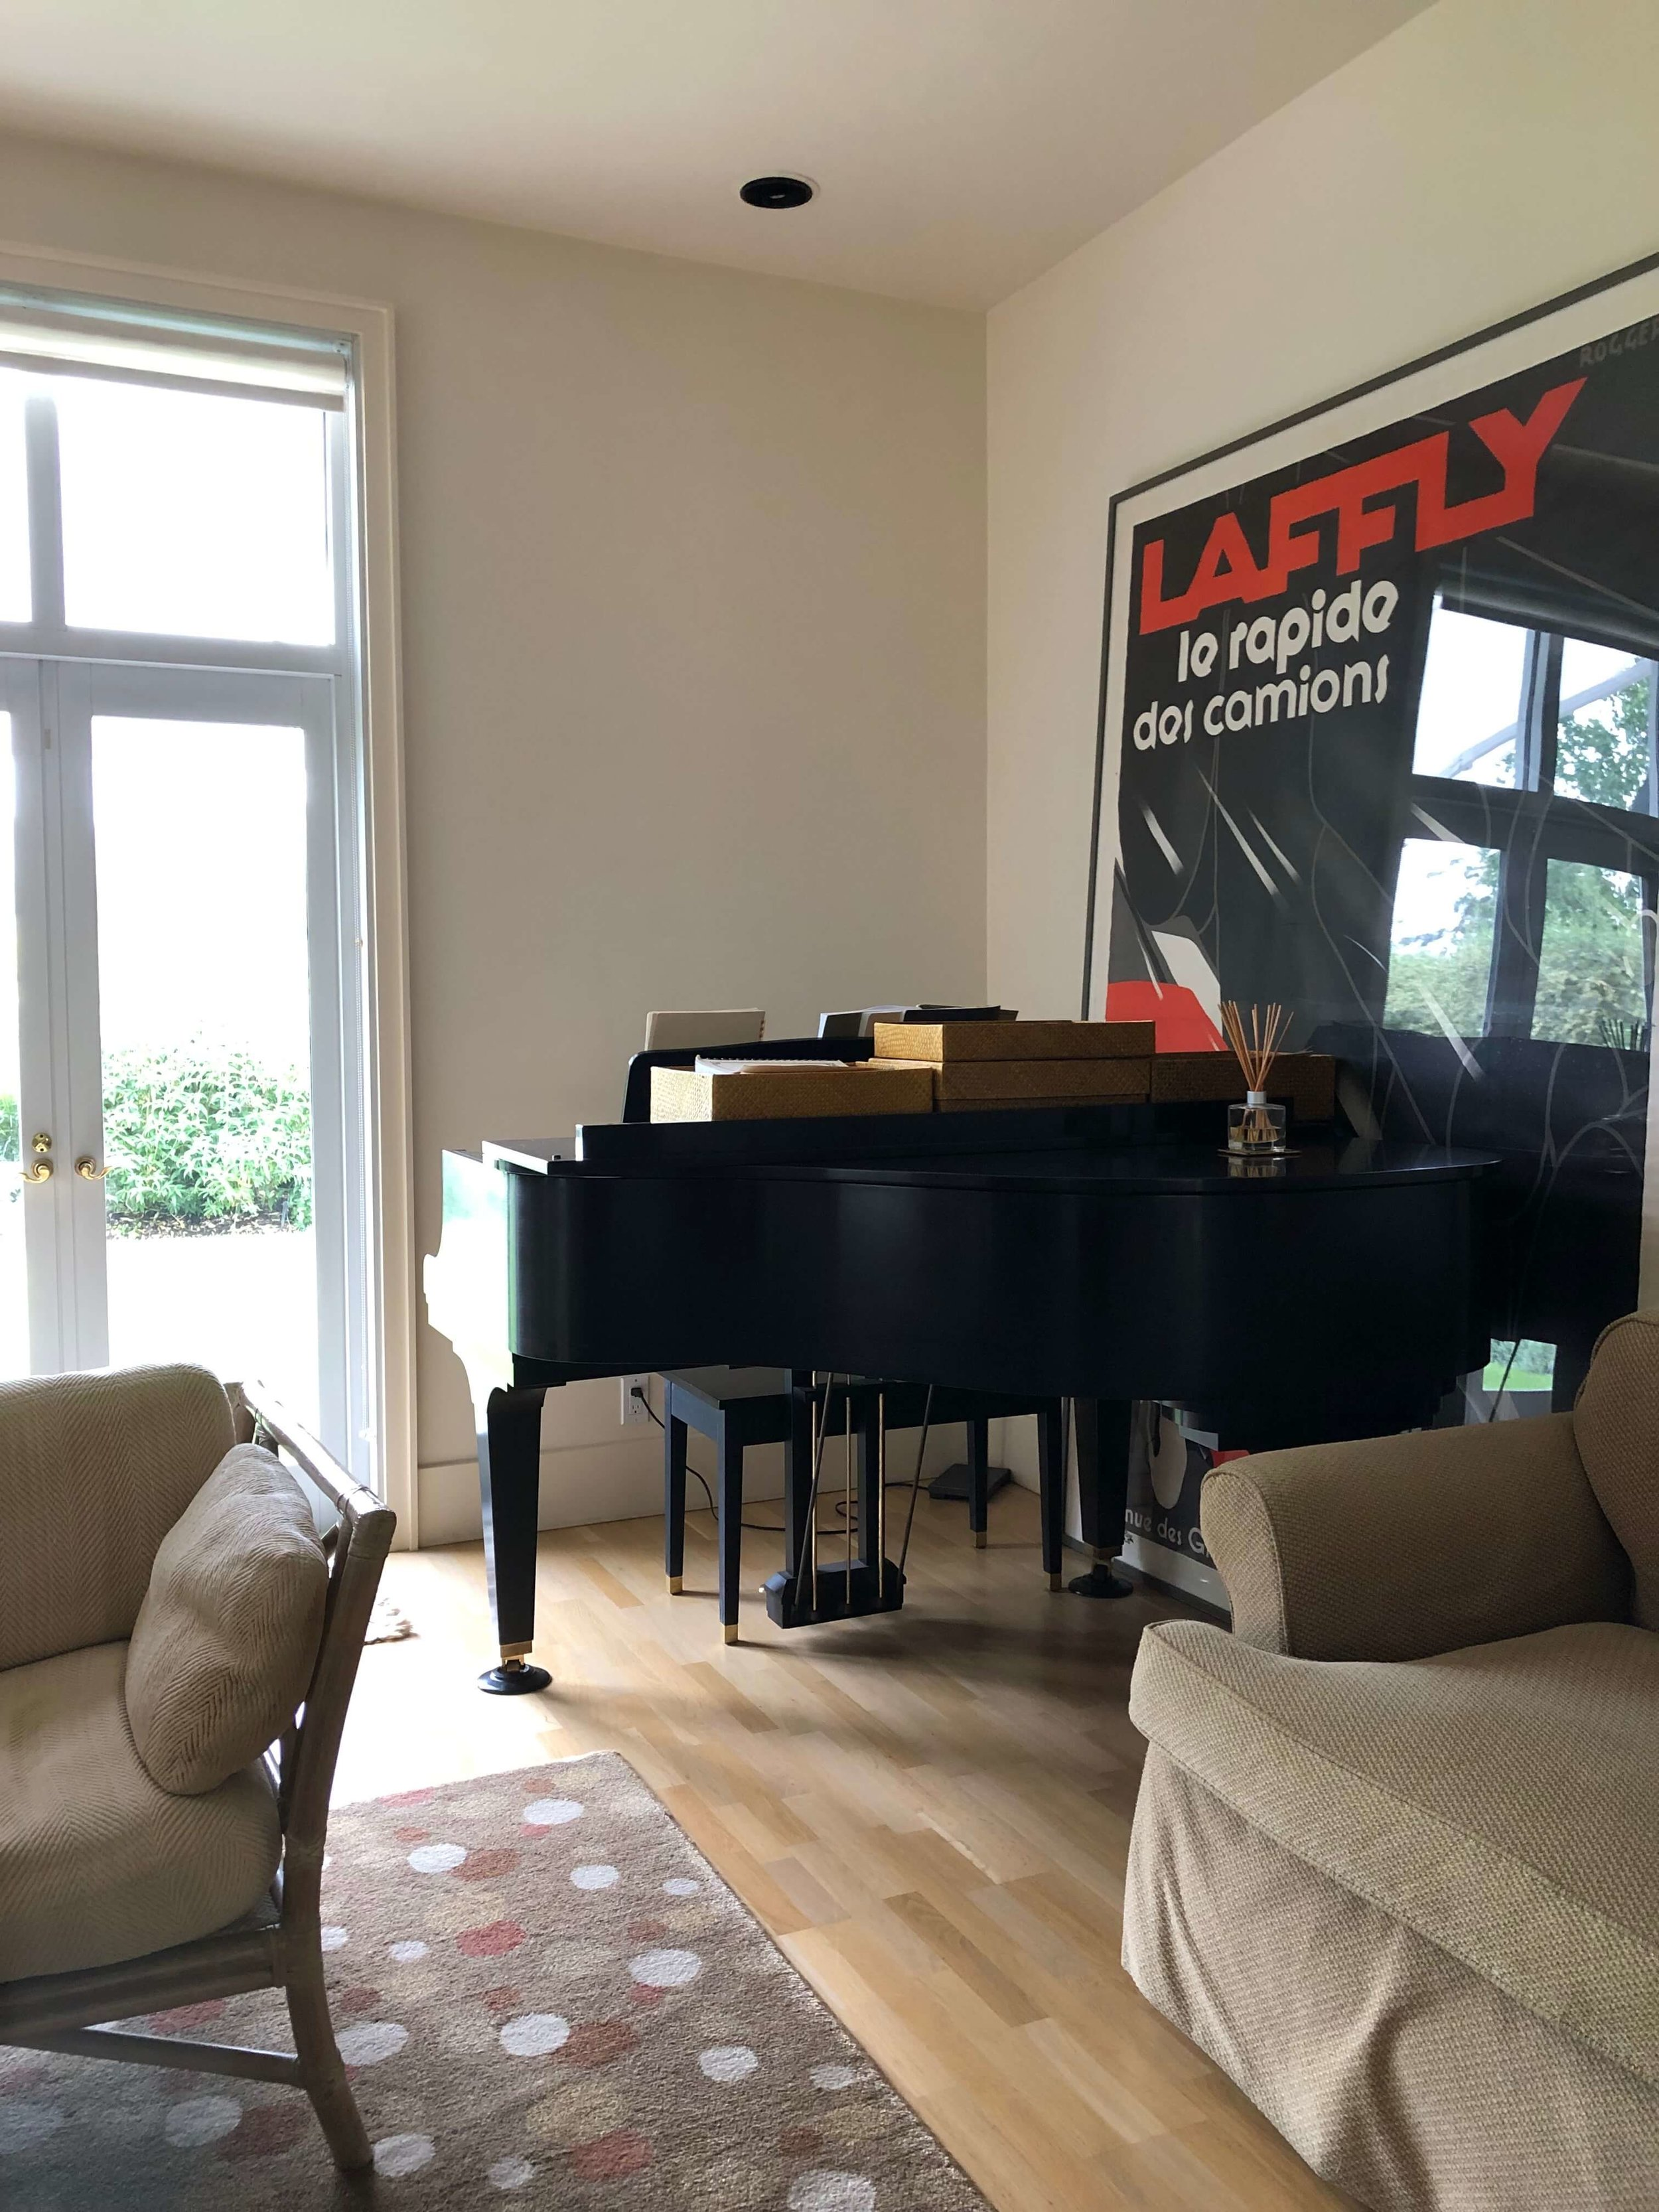 The baby grand in this Sonoma Valley Airbnb adds sophistiction to the European ambience in the living room. #airbnb #winecountry